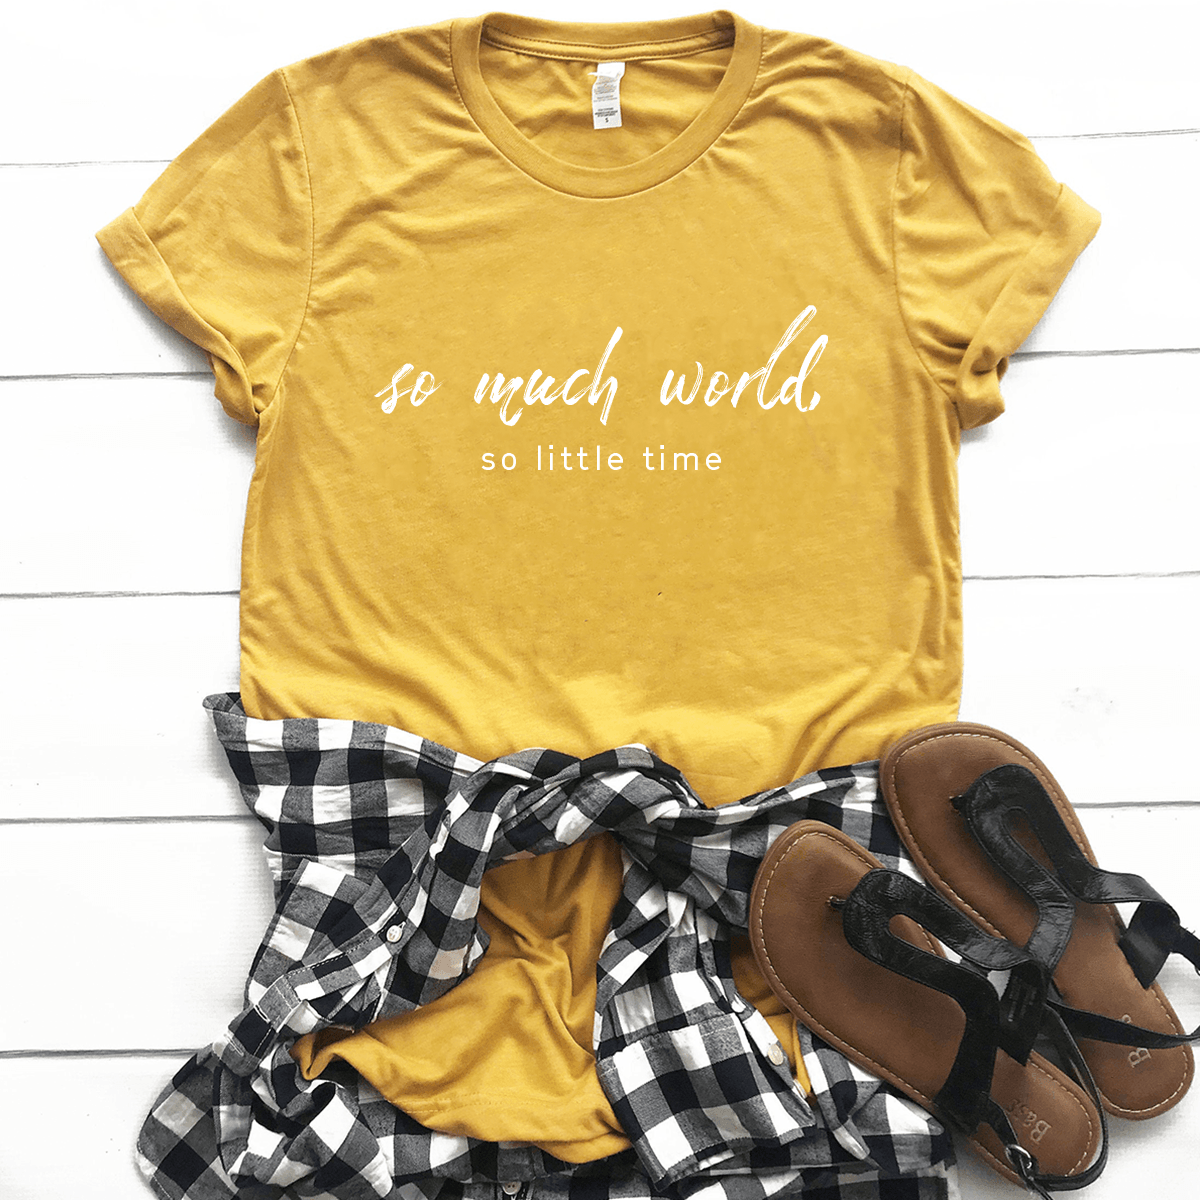 So Much World, So Little Time - Bella+Canvas Tee